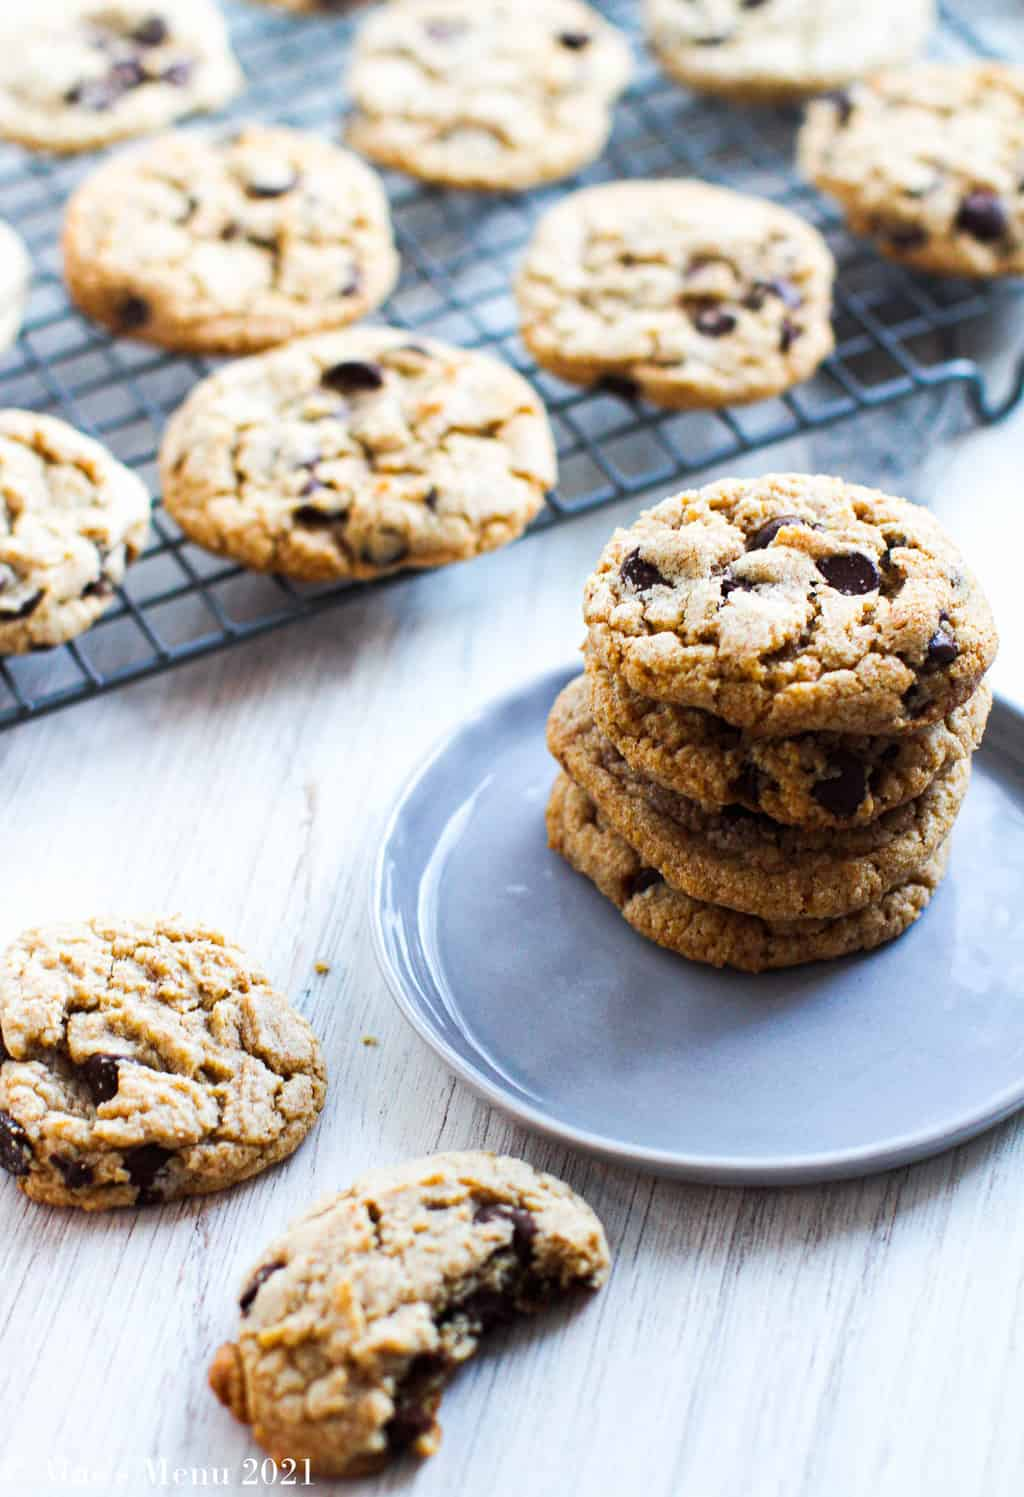 A stack of whole wheat chocolate chip cookies on a blue-gray plate next to cookies on the counter and a cooling rack full of them behind the plate